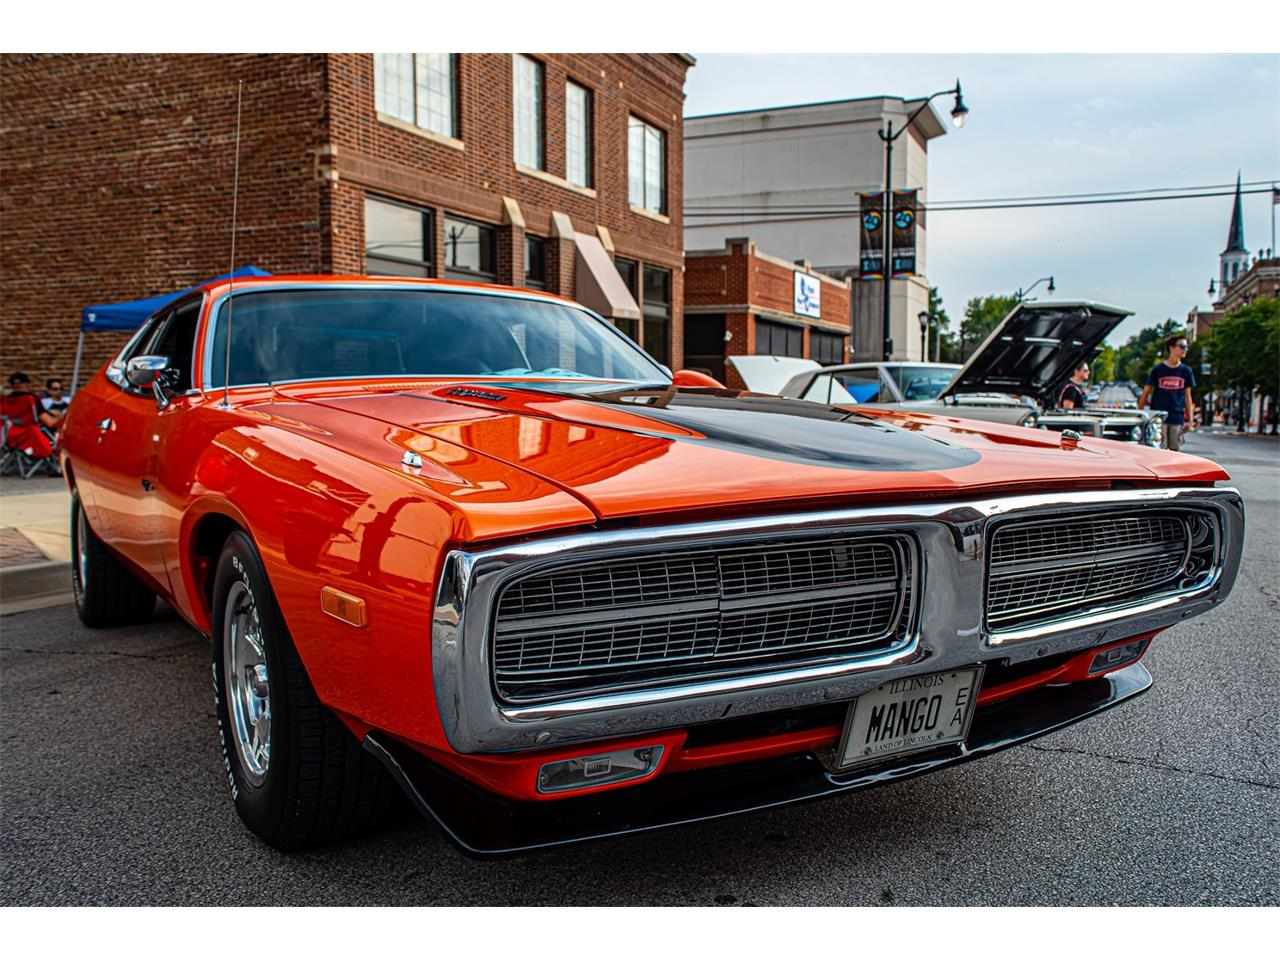 for sale 1973 dodge charger in rochester, illinois cars - rochester, il at geebo